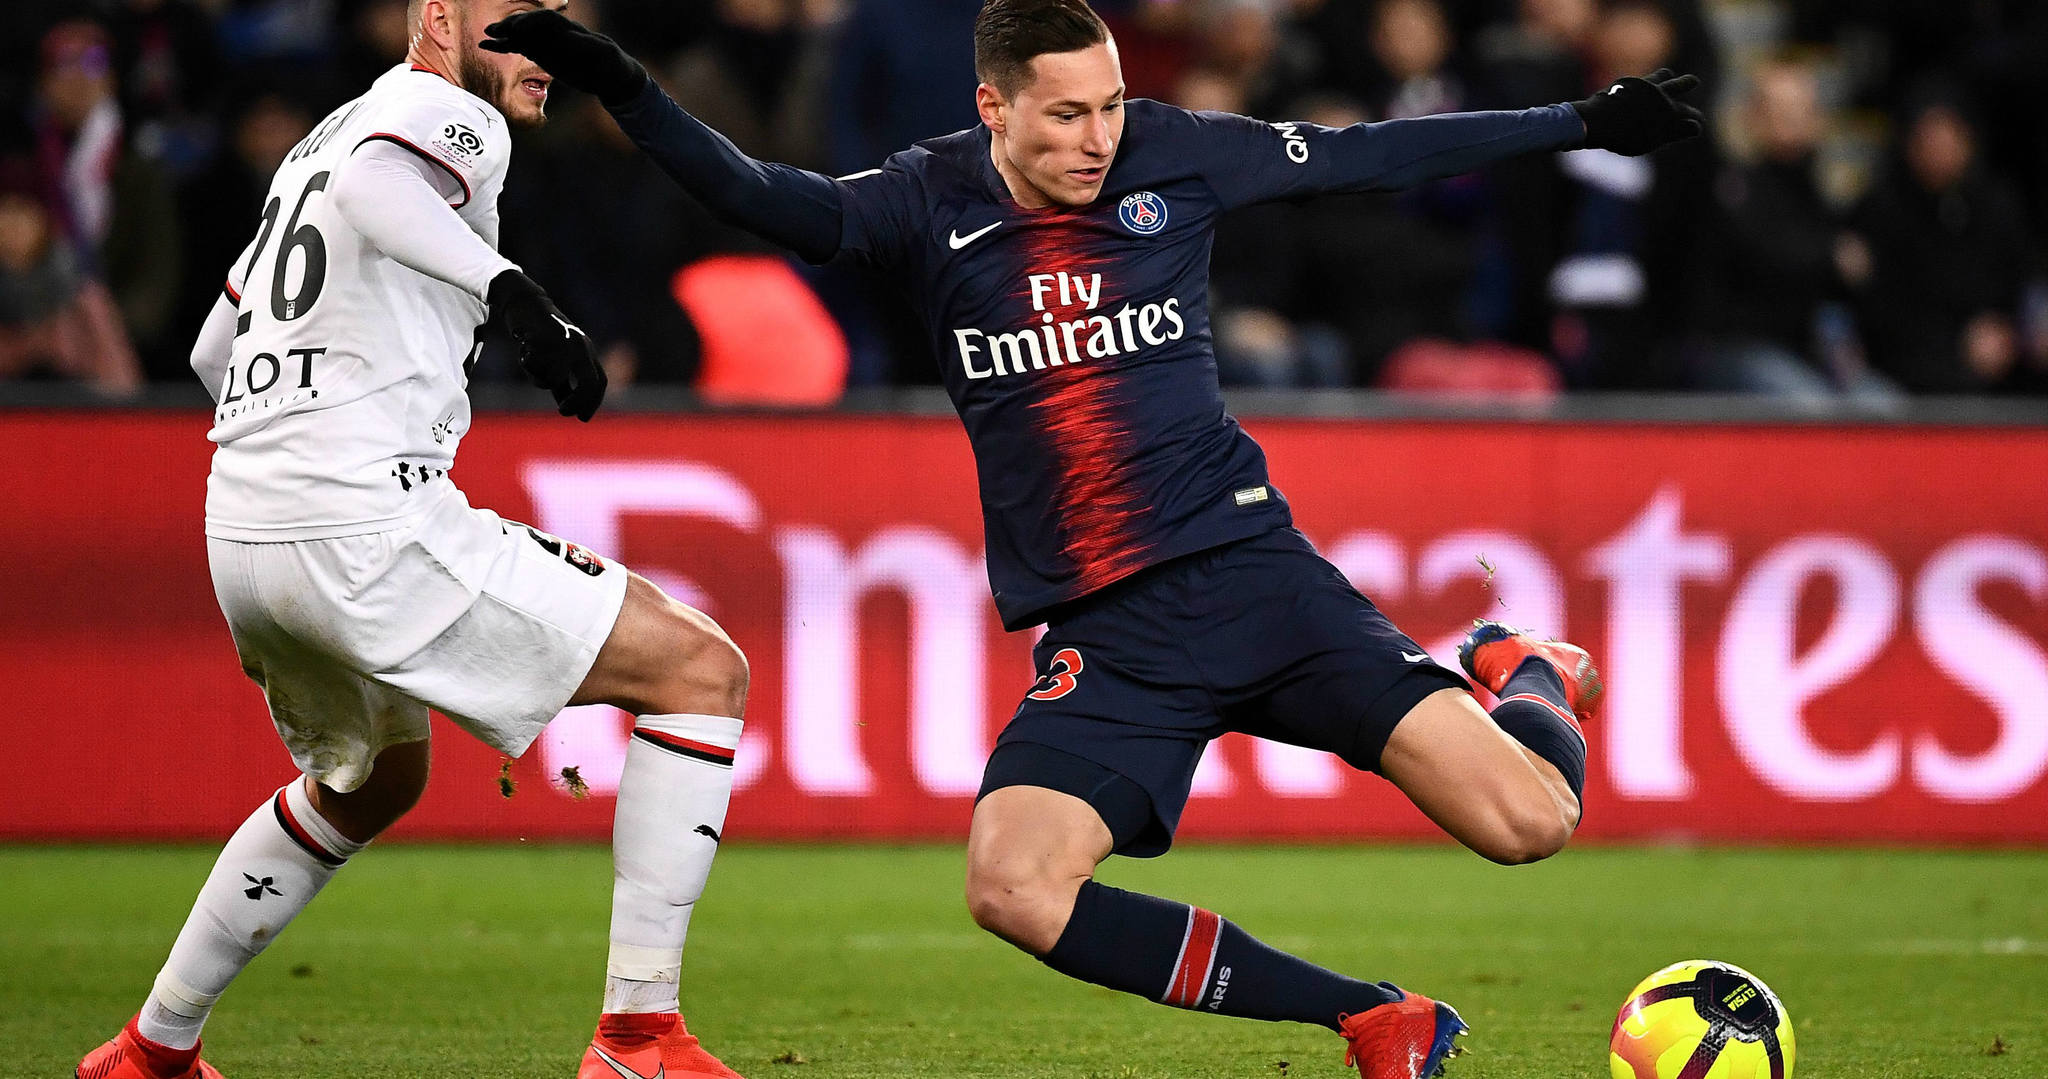 PSG need extra time to beat minnows Villefranche in French Cup